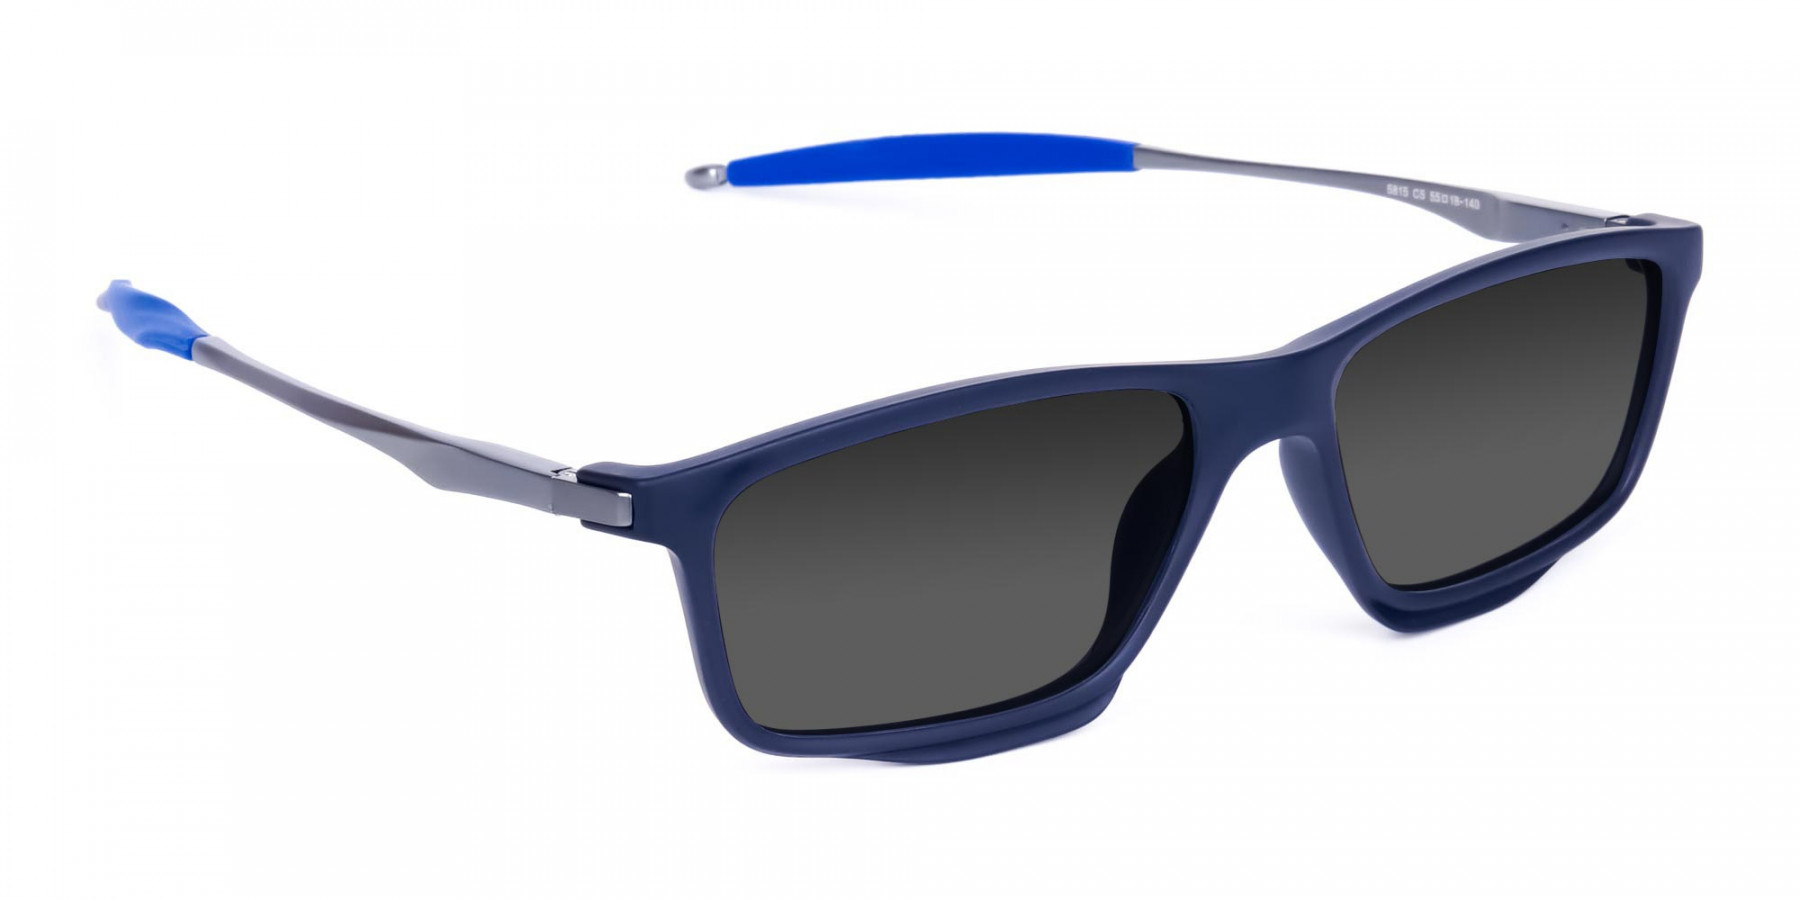 Small Black Rectangle Polarized Sunglasses For Fishing With Grey Tint-3